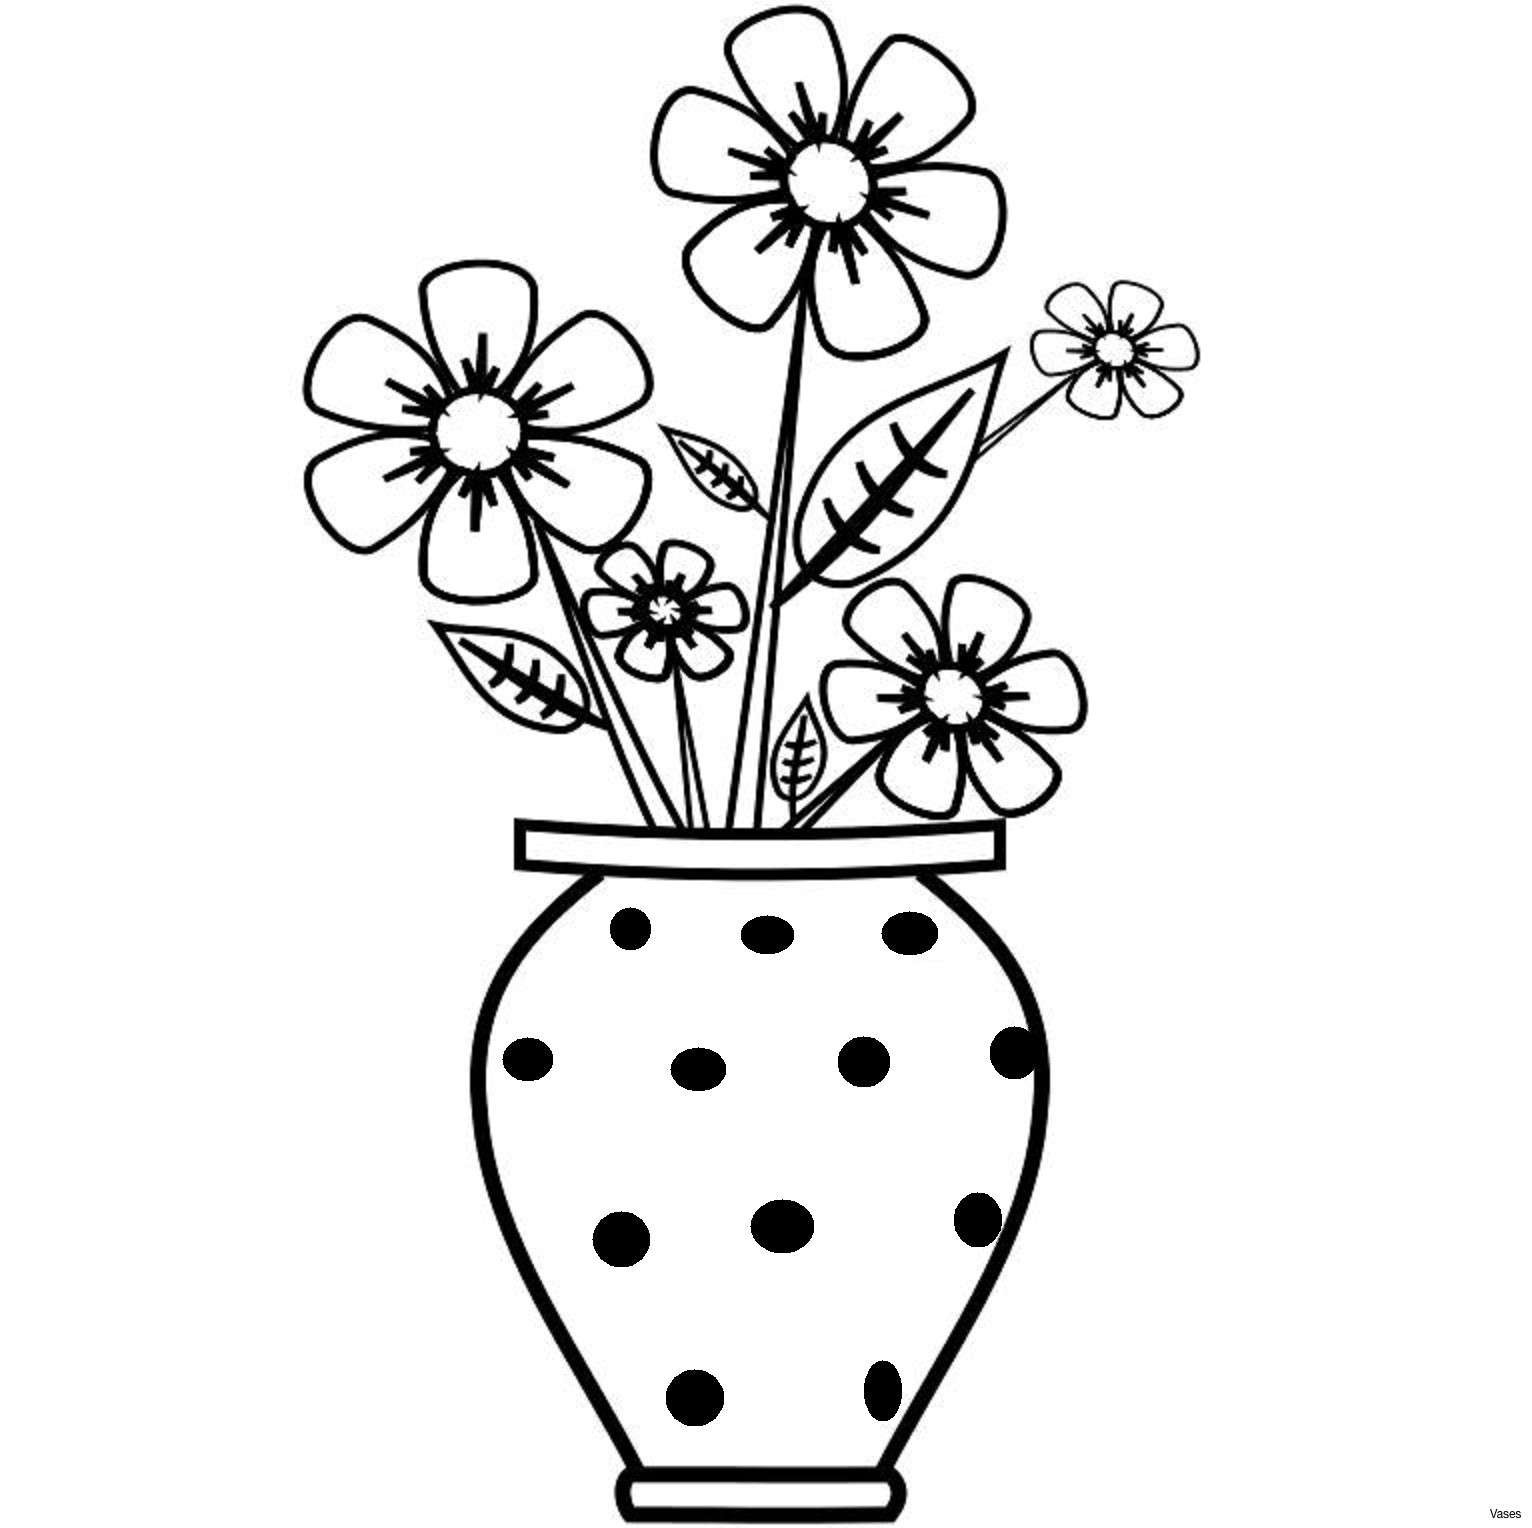 Flowers Delivered In Vase Of Christmas Flowers Coloring Pages Vase with Flowers Coloring Page In Christmas Flowers Coloring Pages Vase with Flowers Coloring Page Fresh Christmas Color Pages Cool